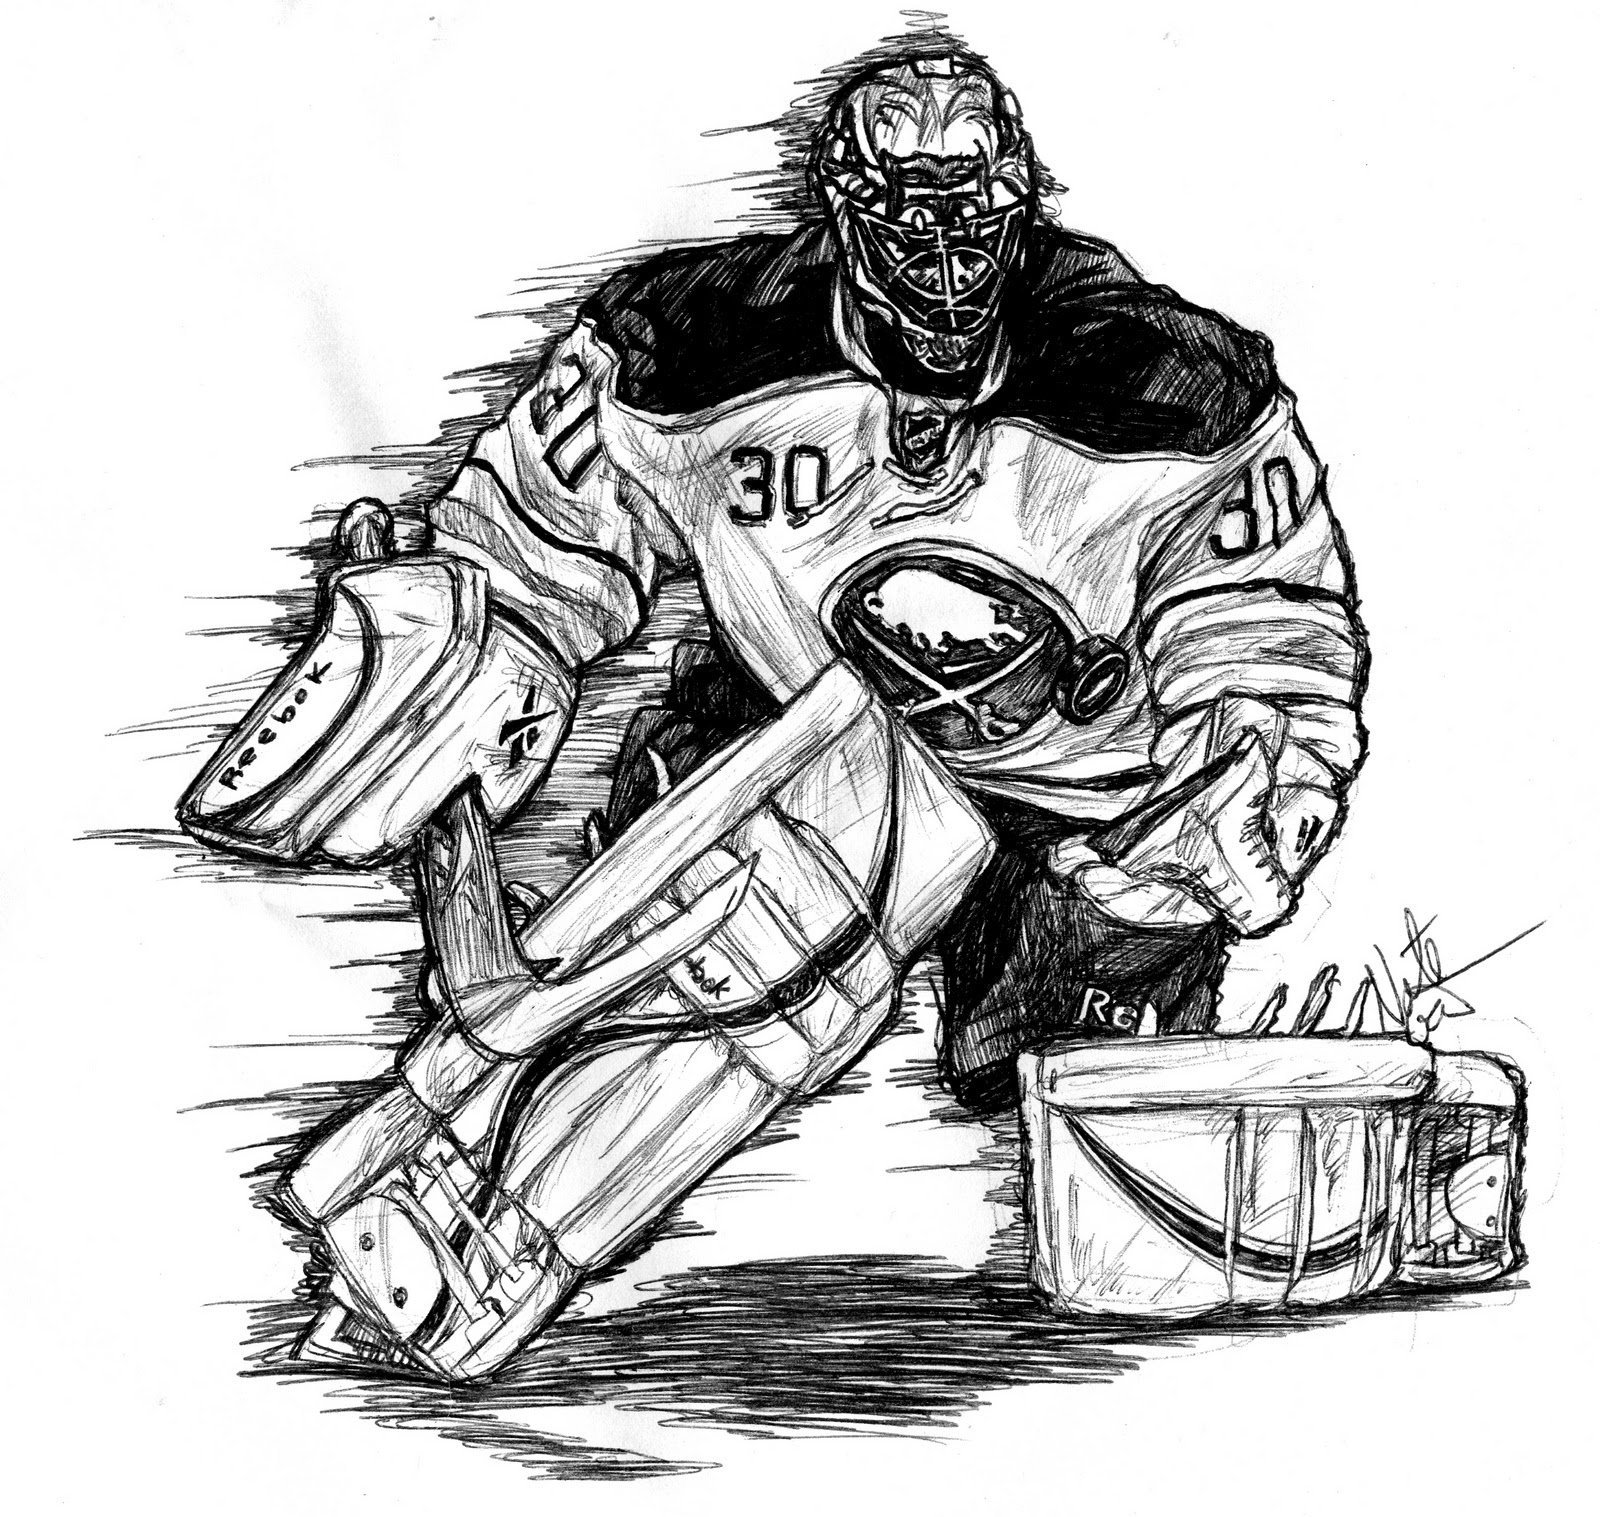 how to draw a cartoon hockey player hockey player clipart and stock illustrations 5377 draw how cartoon player a hockey to